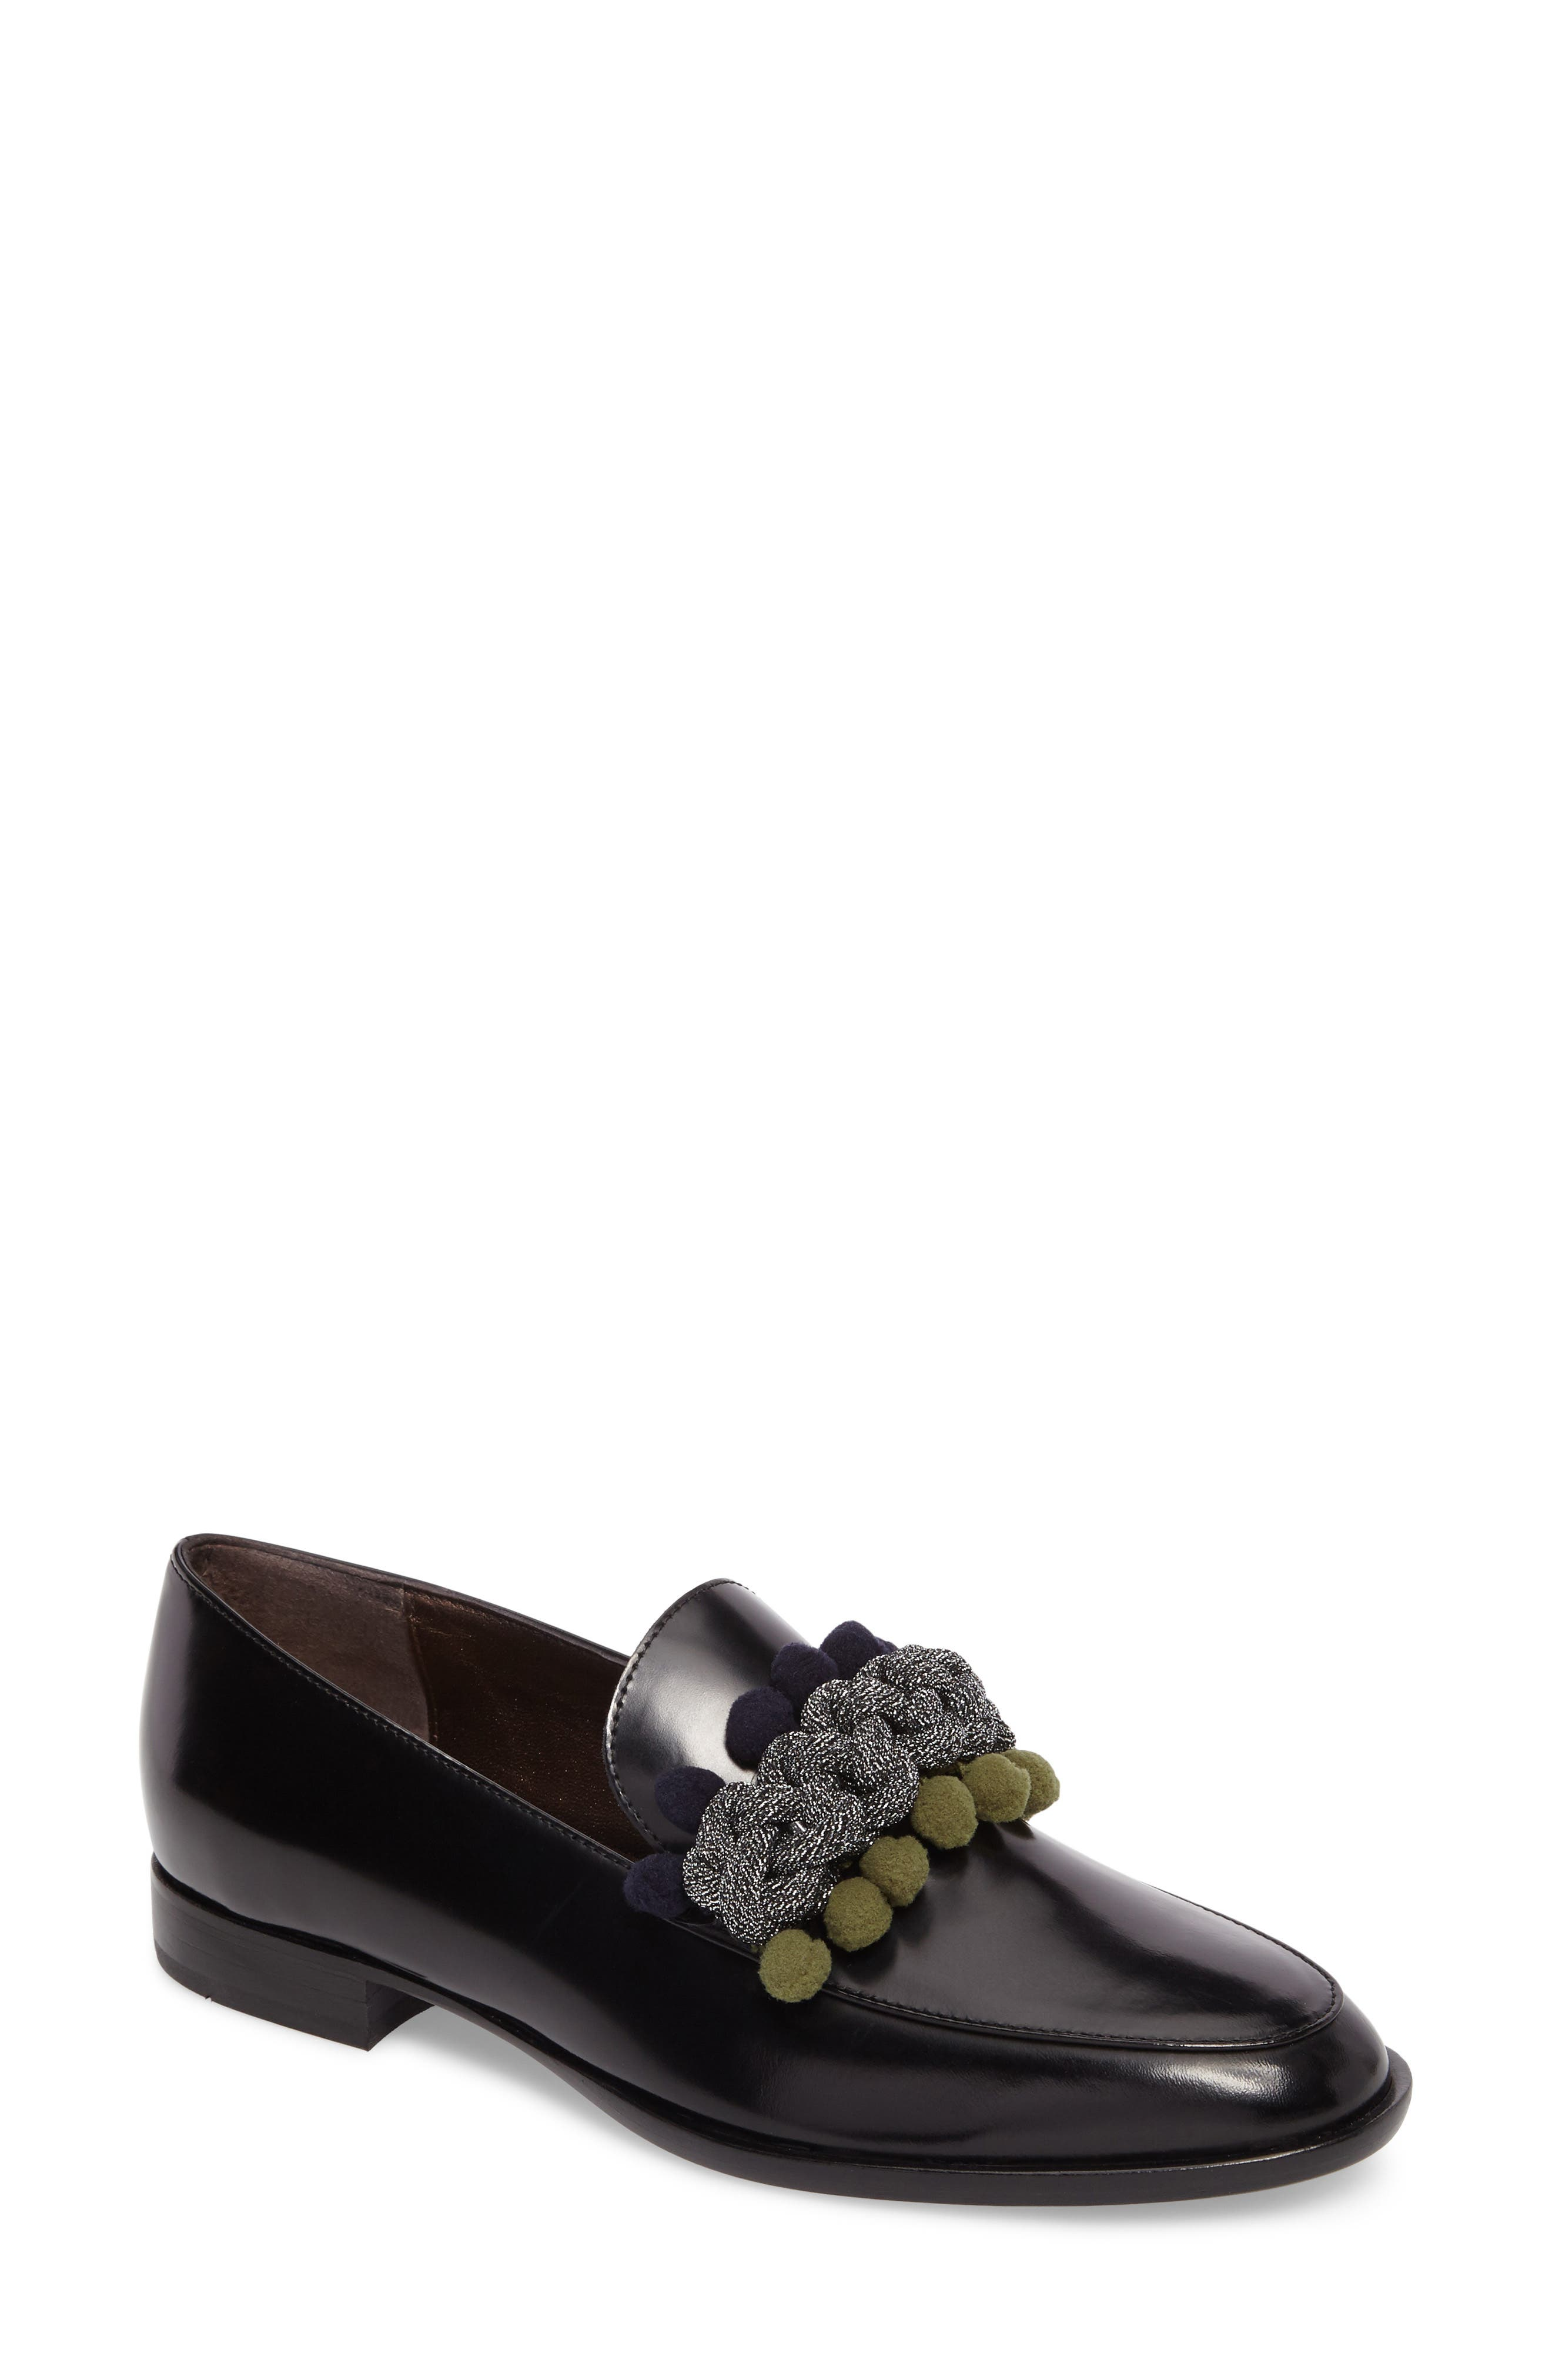 Pom Pom Loafer,                         Main,                         color, Nero Patent